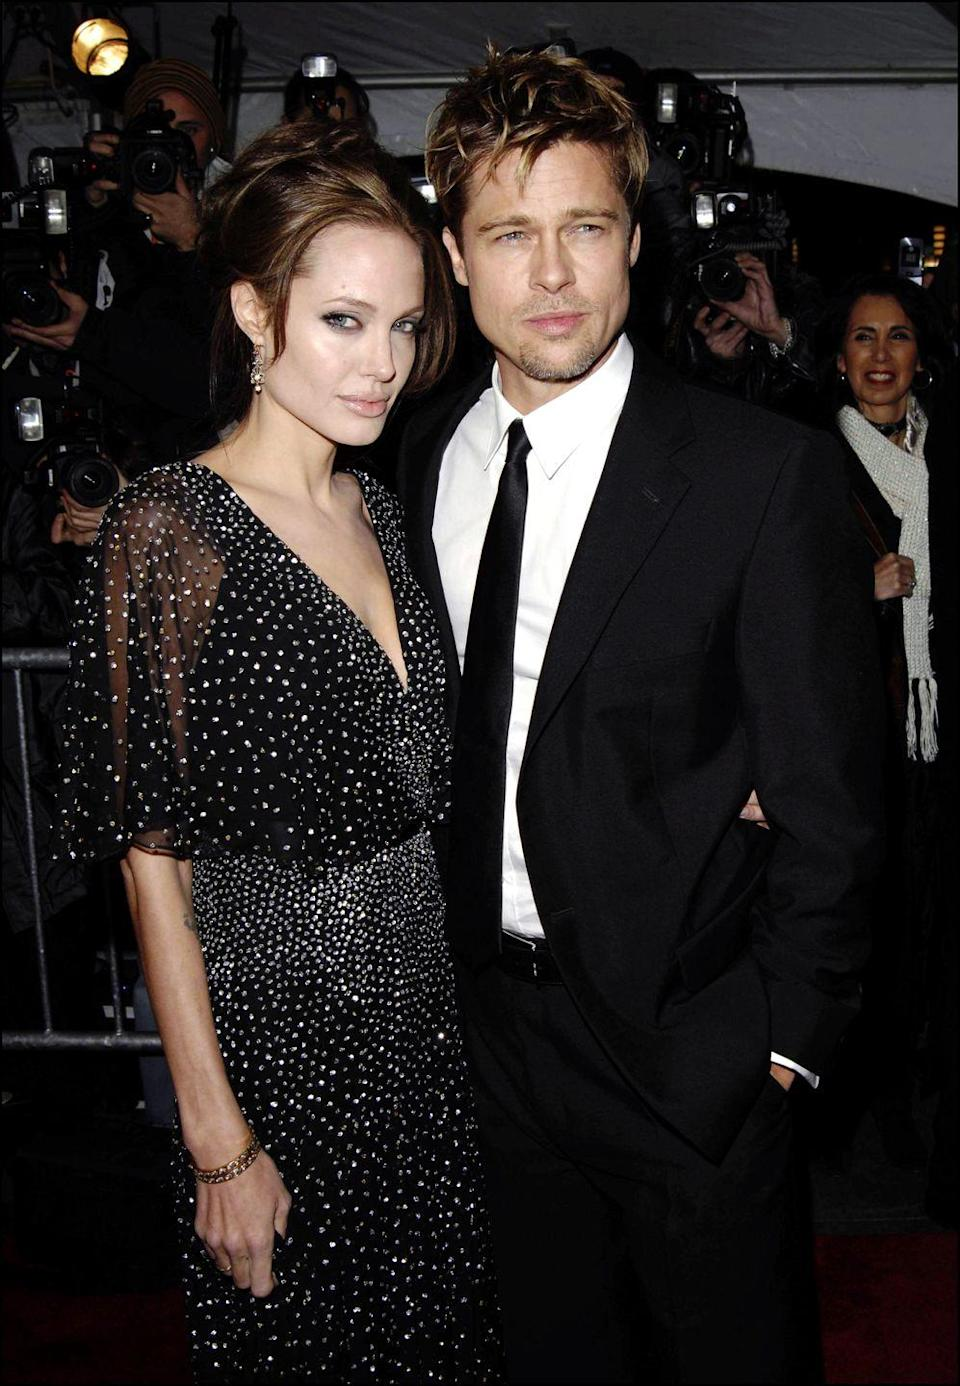 <p>In January 2006, Pitt and Jolie announced that they were expecting, publicly acknowledging their relationship for the first time. Shiloh Nouvel was born on May 27, 2006. Here's the couple in November 2006 at the premiere of <em>The Good Shepherd.</em></p>